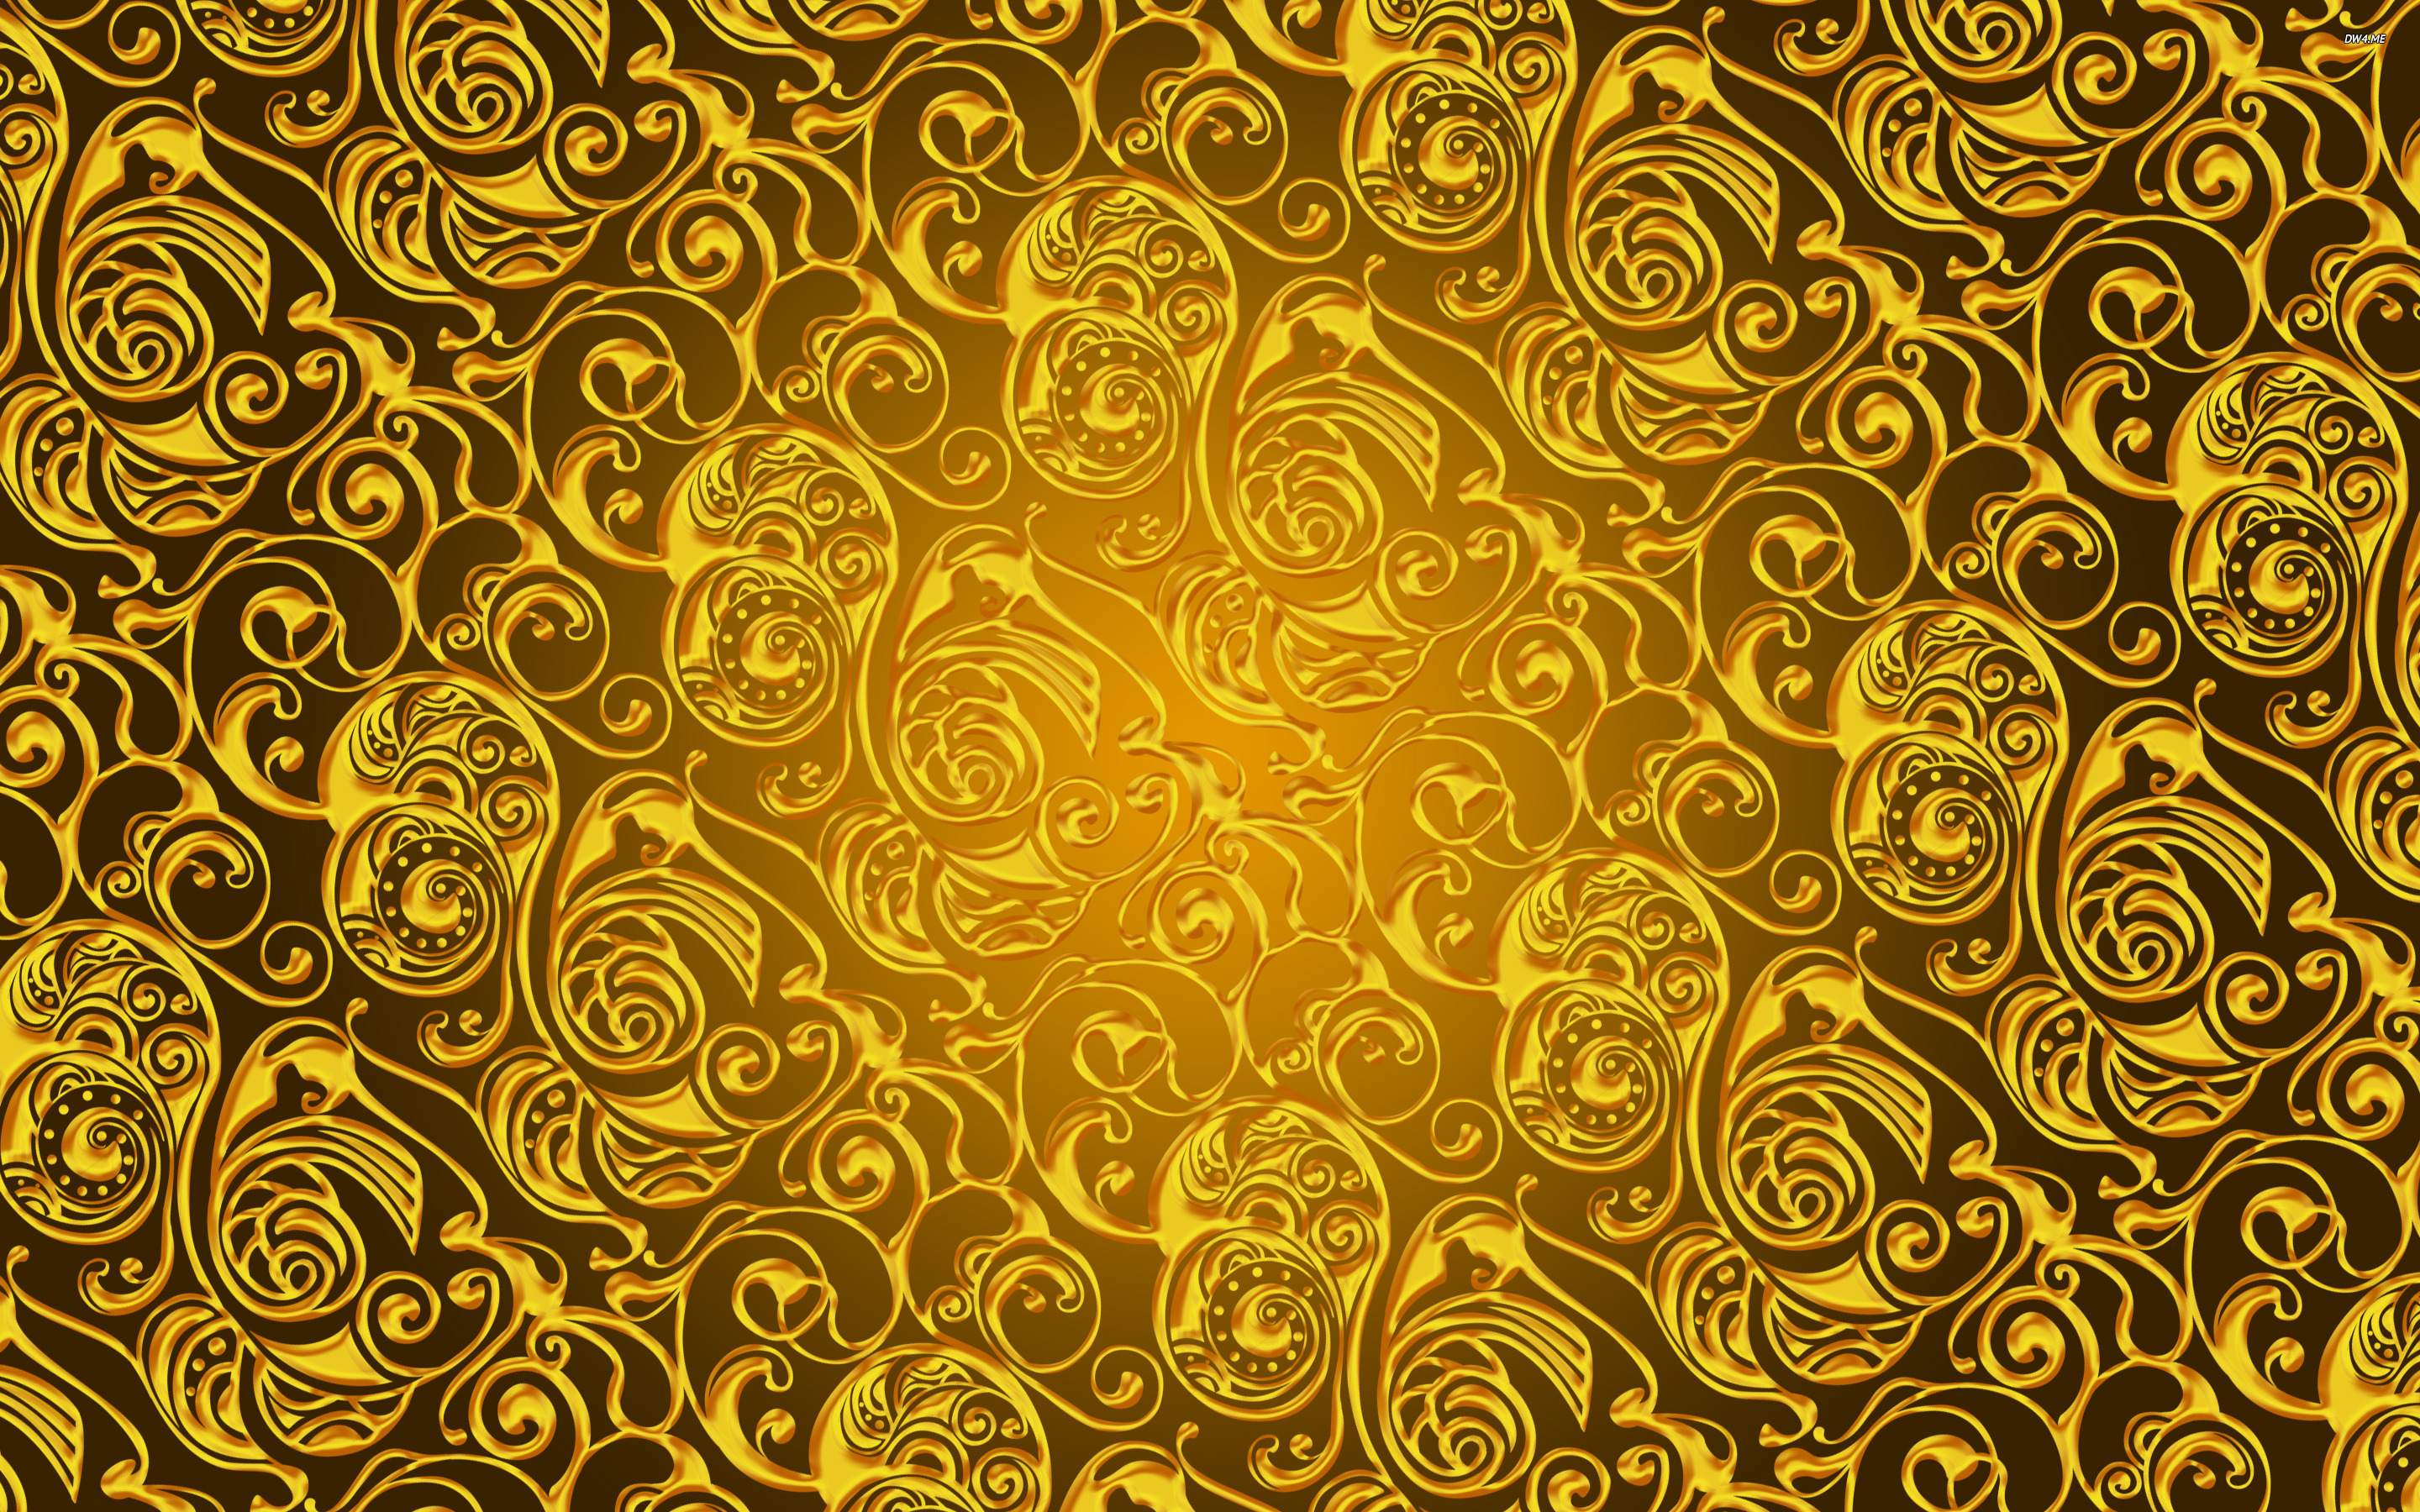 Gold wallpapers pattern hd desktop wallpapers 4k hd for Gold wallpaper